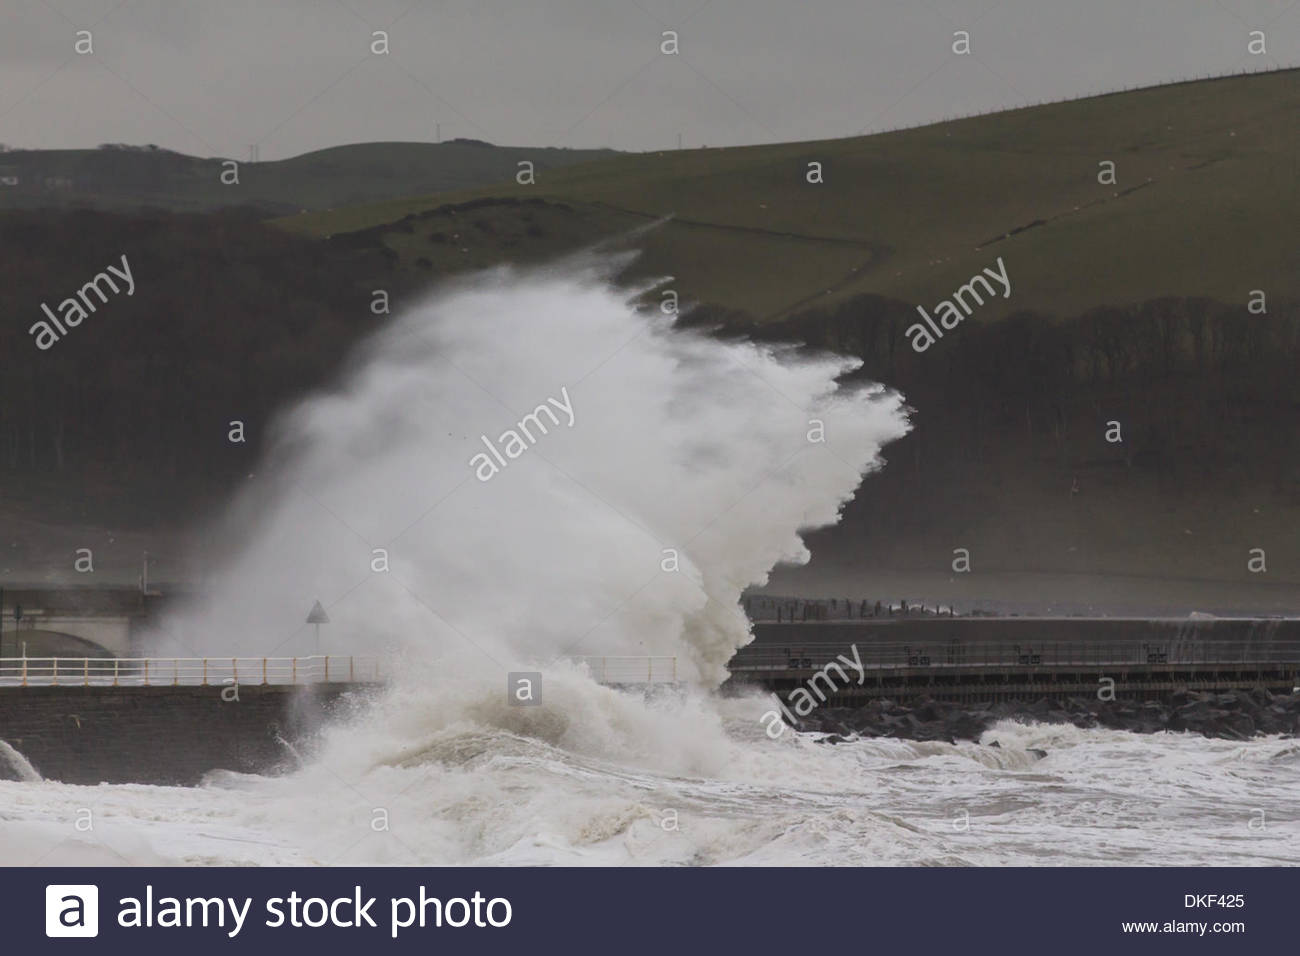 Aberystwyth, mid Wales, UK. 5 December 2013. Gale force winds cause up to a metre of additional swell as high tide moves up the Welsh coast. The authorities have asked the public to keep clear of coastal paths and promenades. Credit:  atgof.co/Alamy Live News - Stock Image